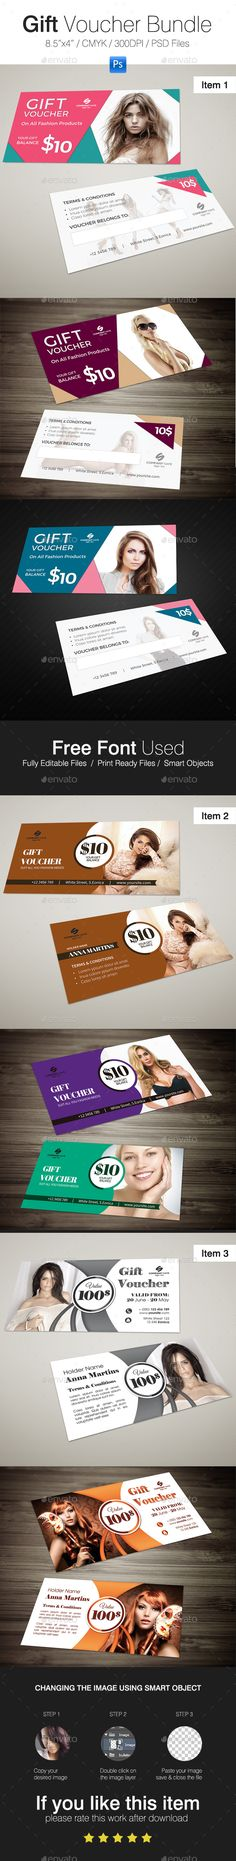 Food Gift Voucher Food gifts, Template and Graphics - design gift vouchers free